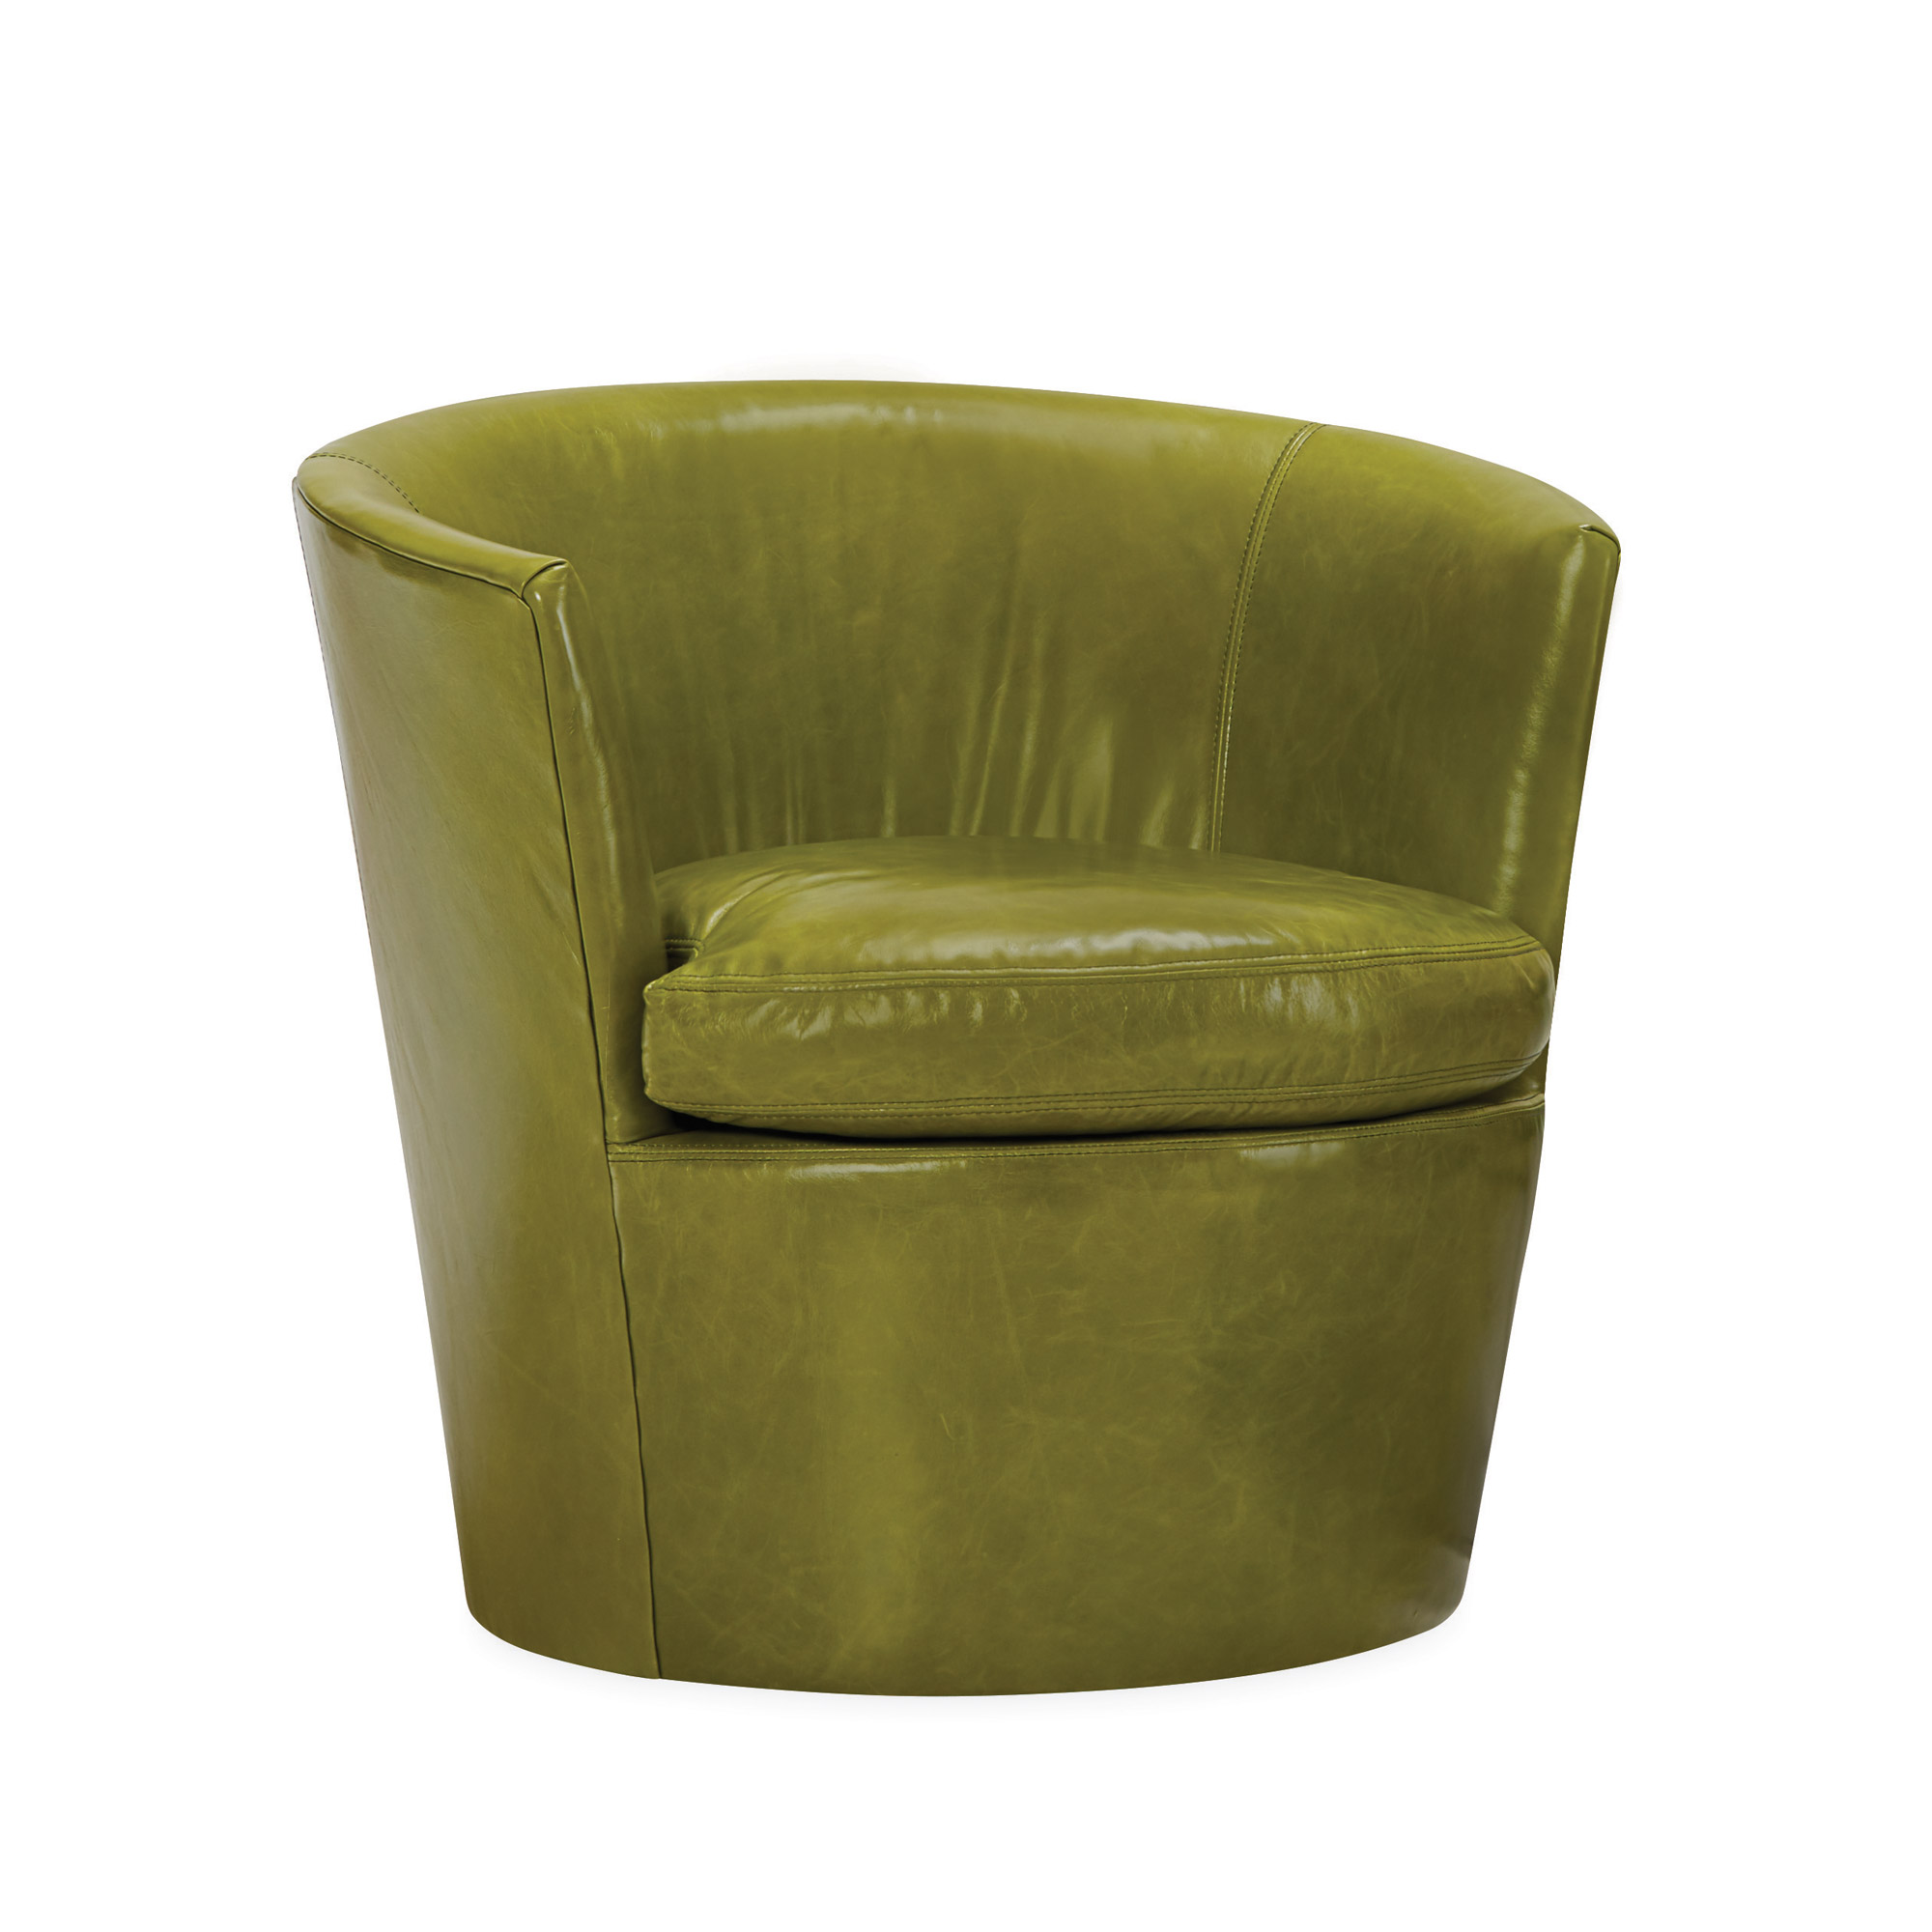 5027_Swivel_Tub_Chair_Lee_leather.jpg